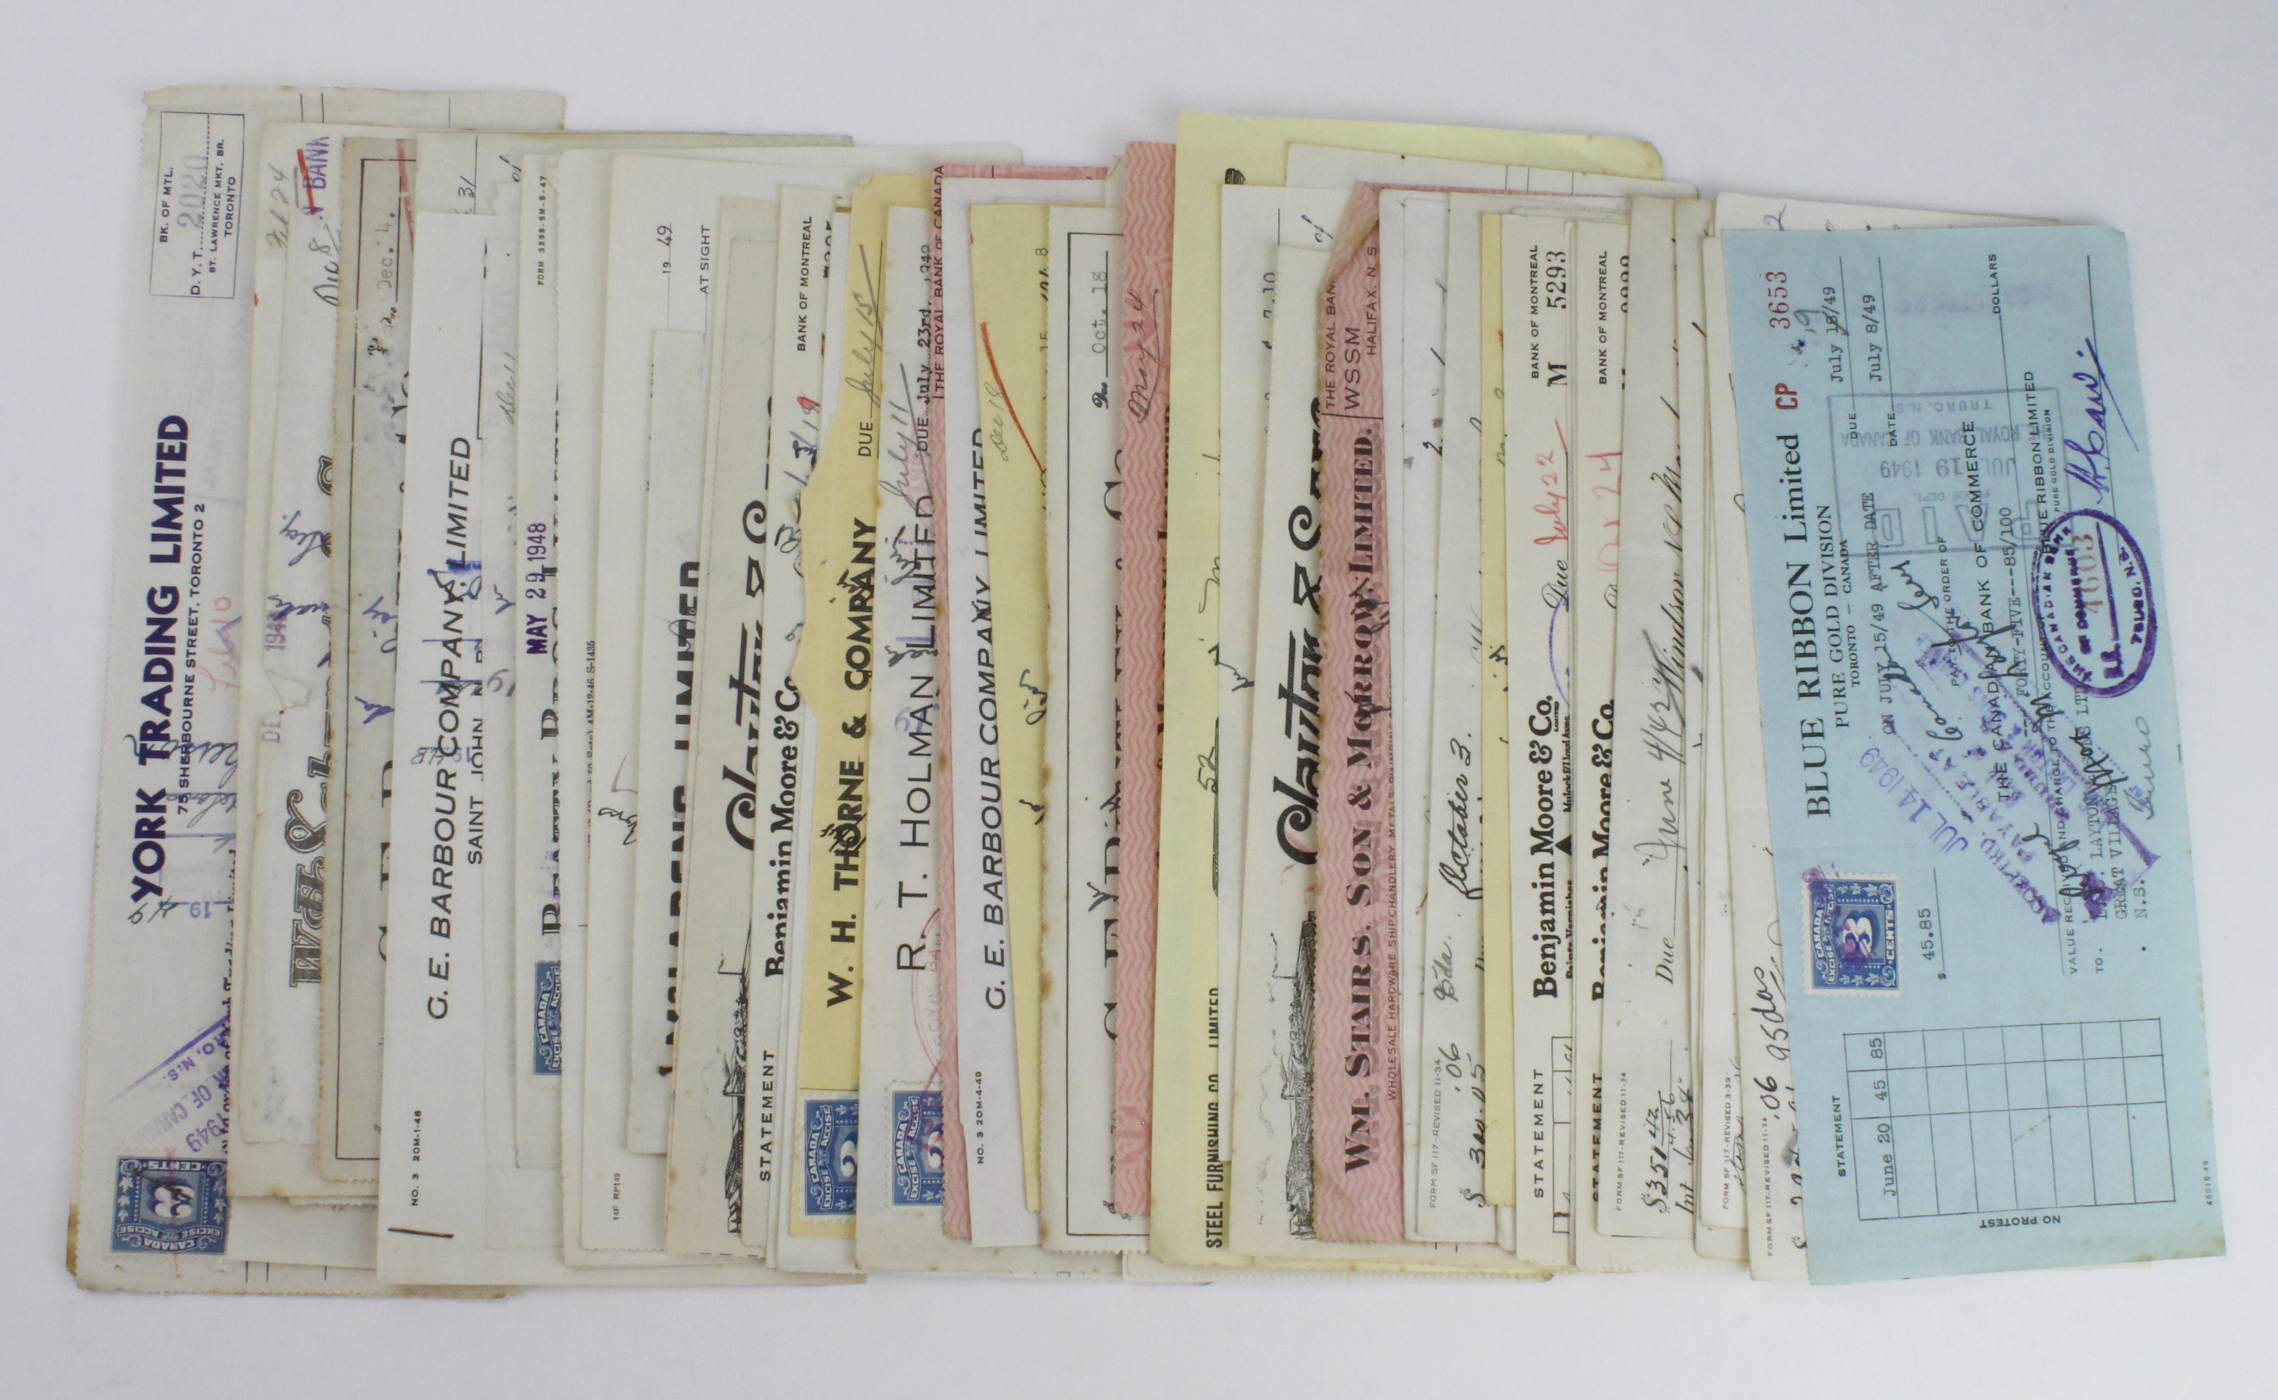 Canada Cheques (61) a nice collection of cheques, mostly 1940's, an interesting group